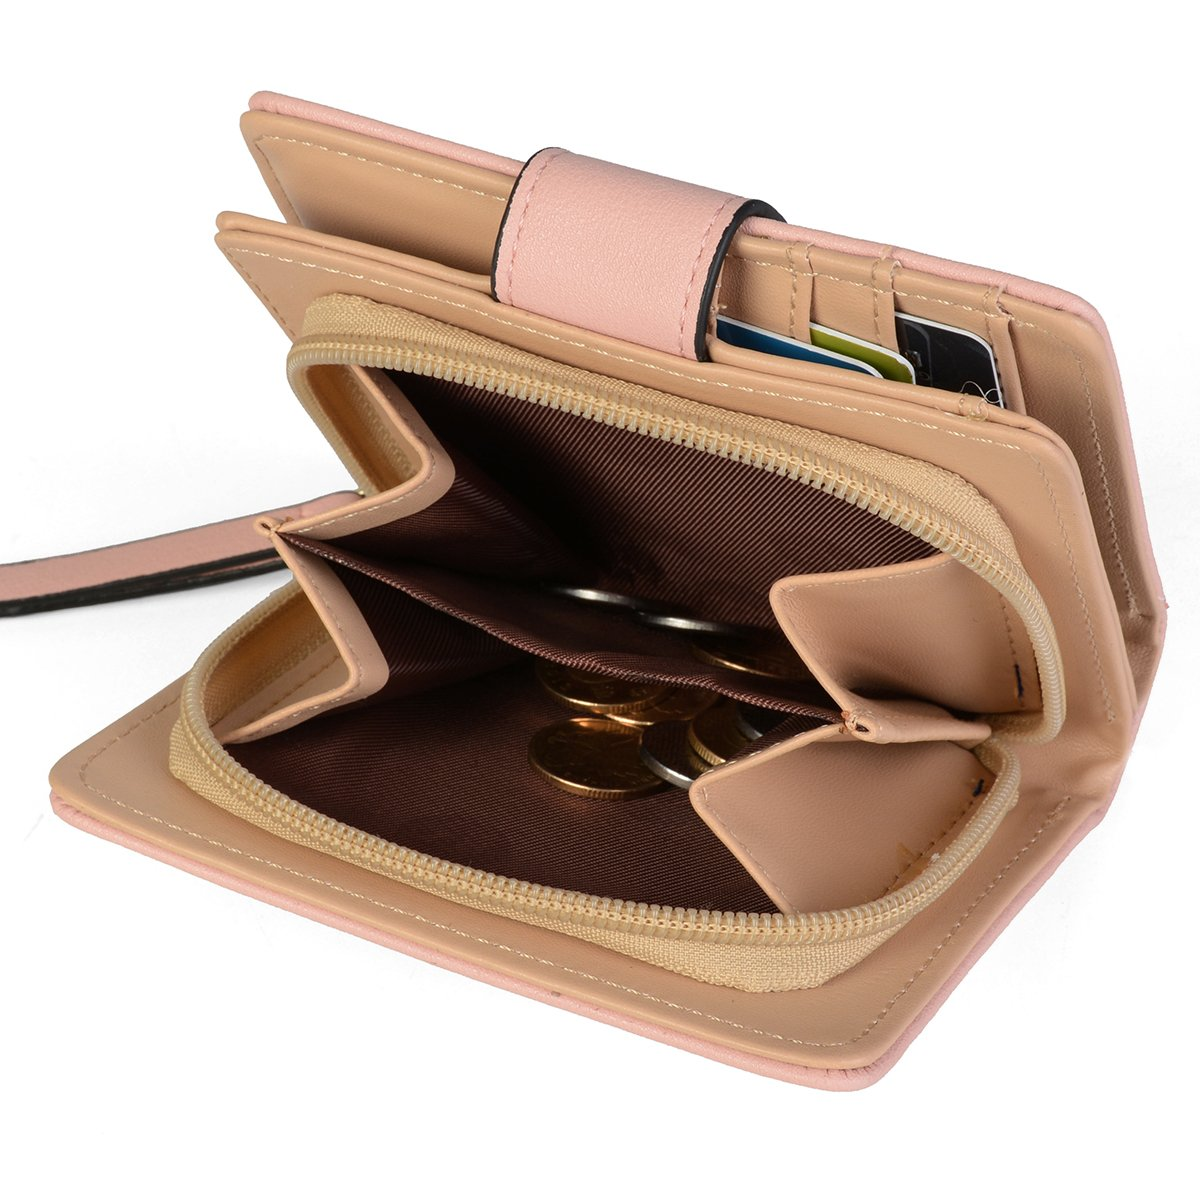 Women's Short Leather Wallet Leaf Bifold Card Coin Holder Small Purses Buckle Zipper Clutch,Pink-by Vodiu by vodiu (Image #5)